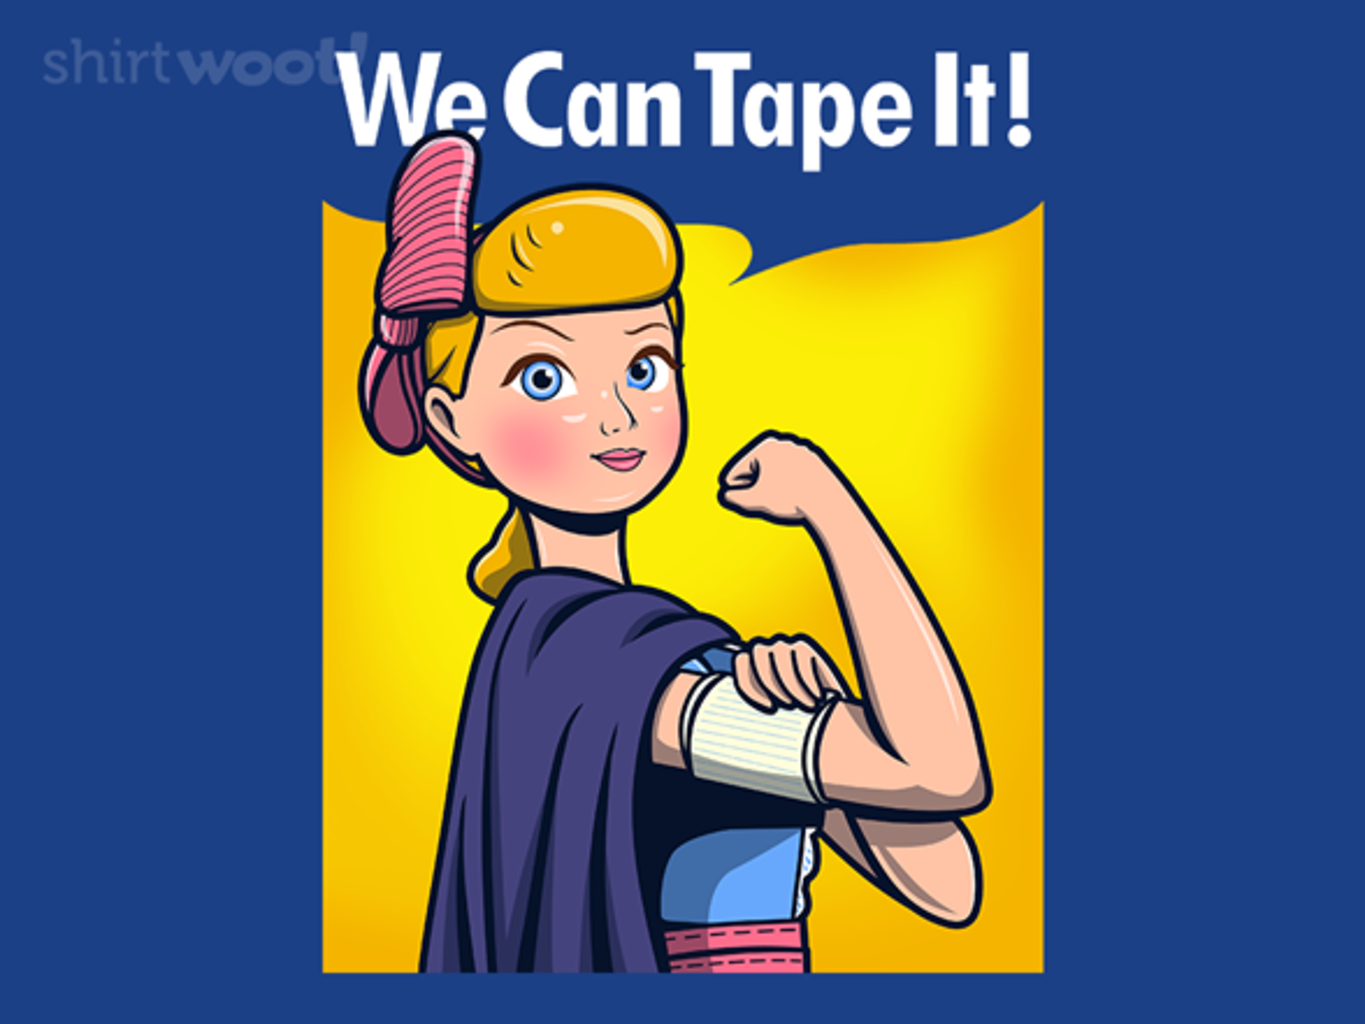 Woot!: We Can Tape it!